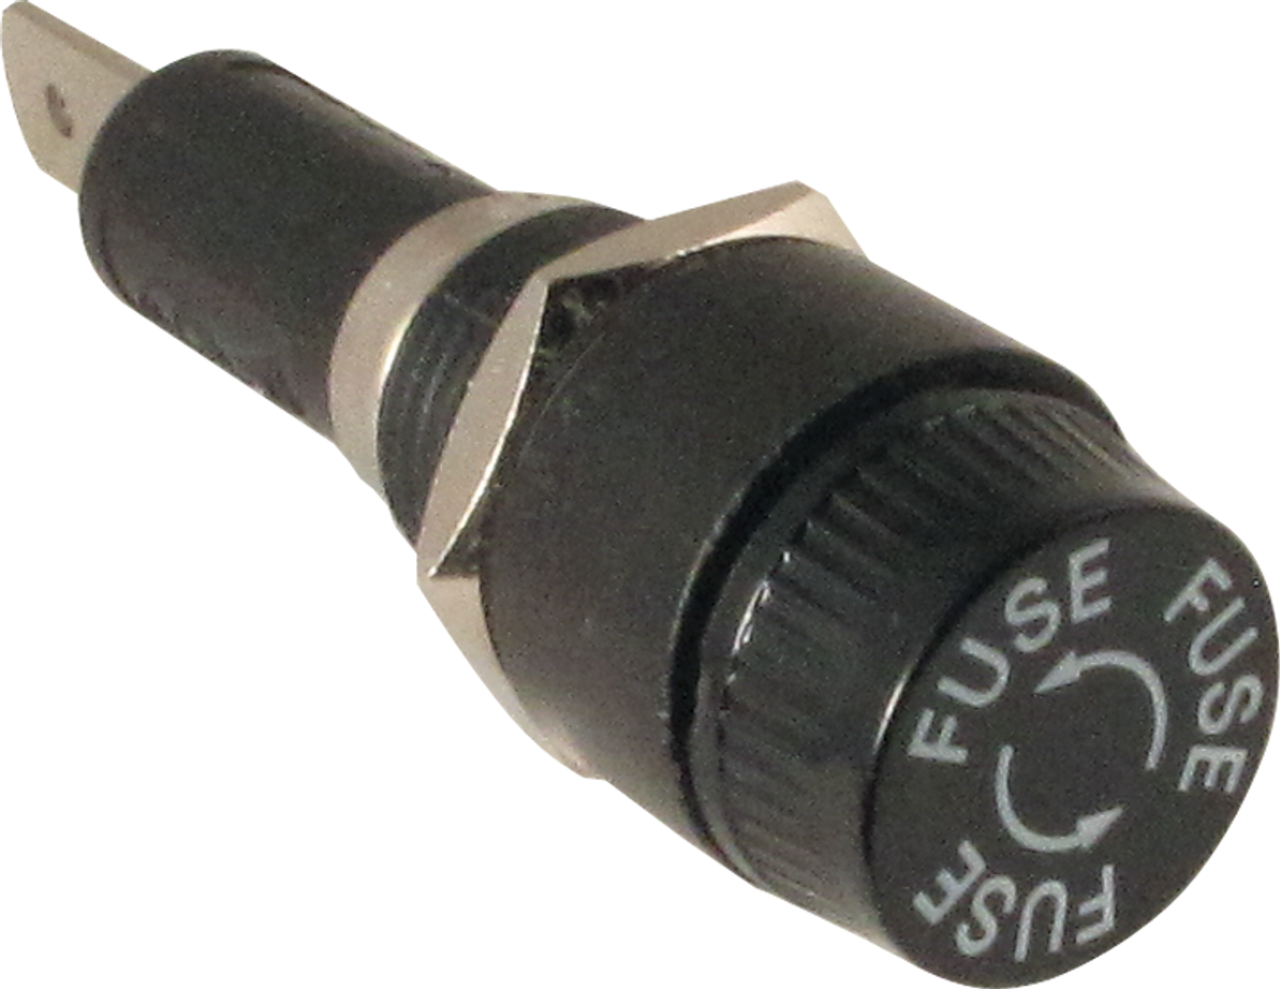 Fuse Holder - Generic 3AG Type